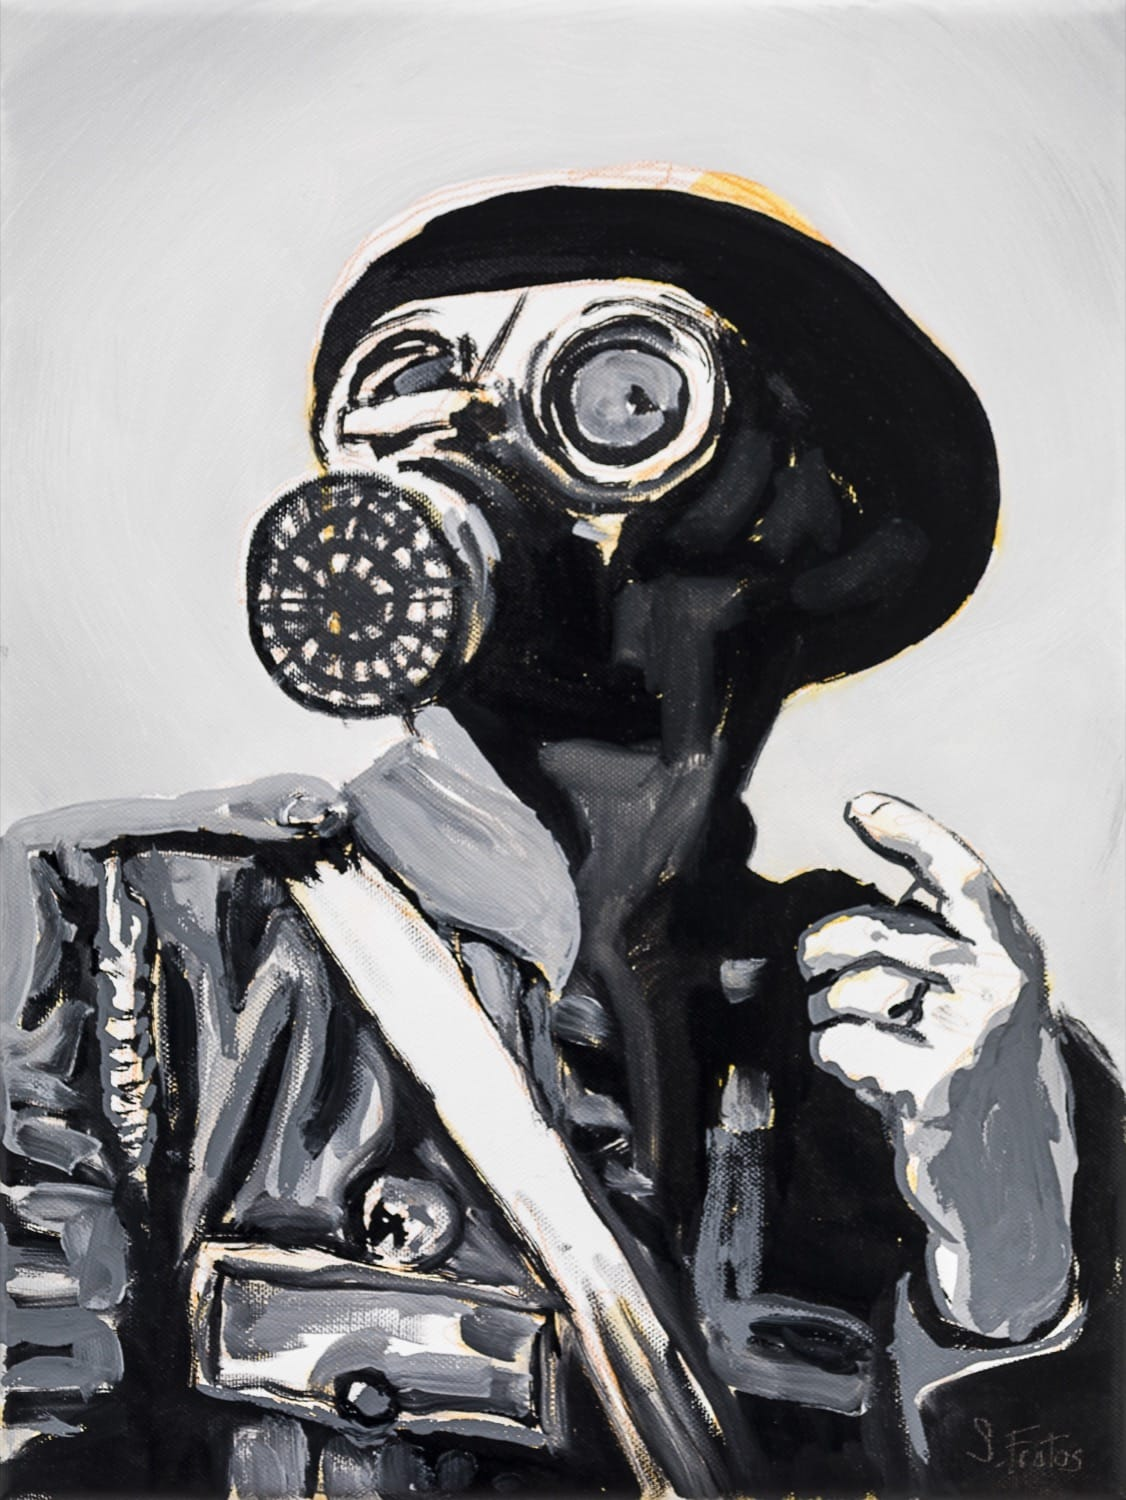 Air Raid Warden. Oil on canvas, 30 x 40 cm, 2020